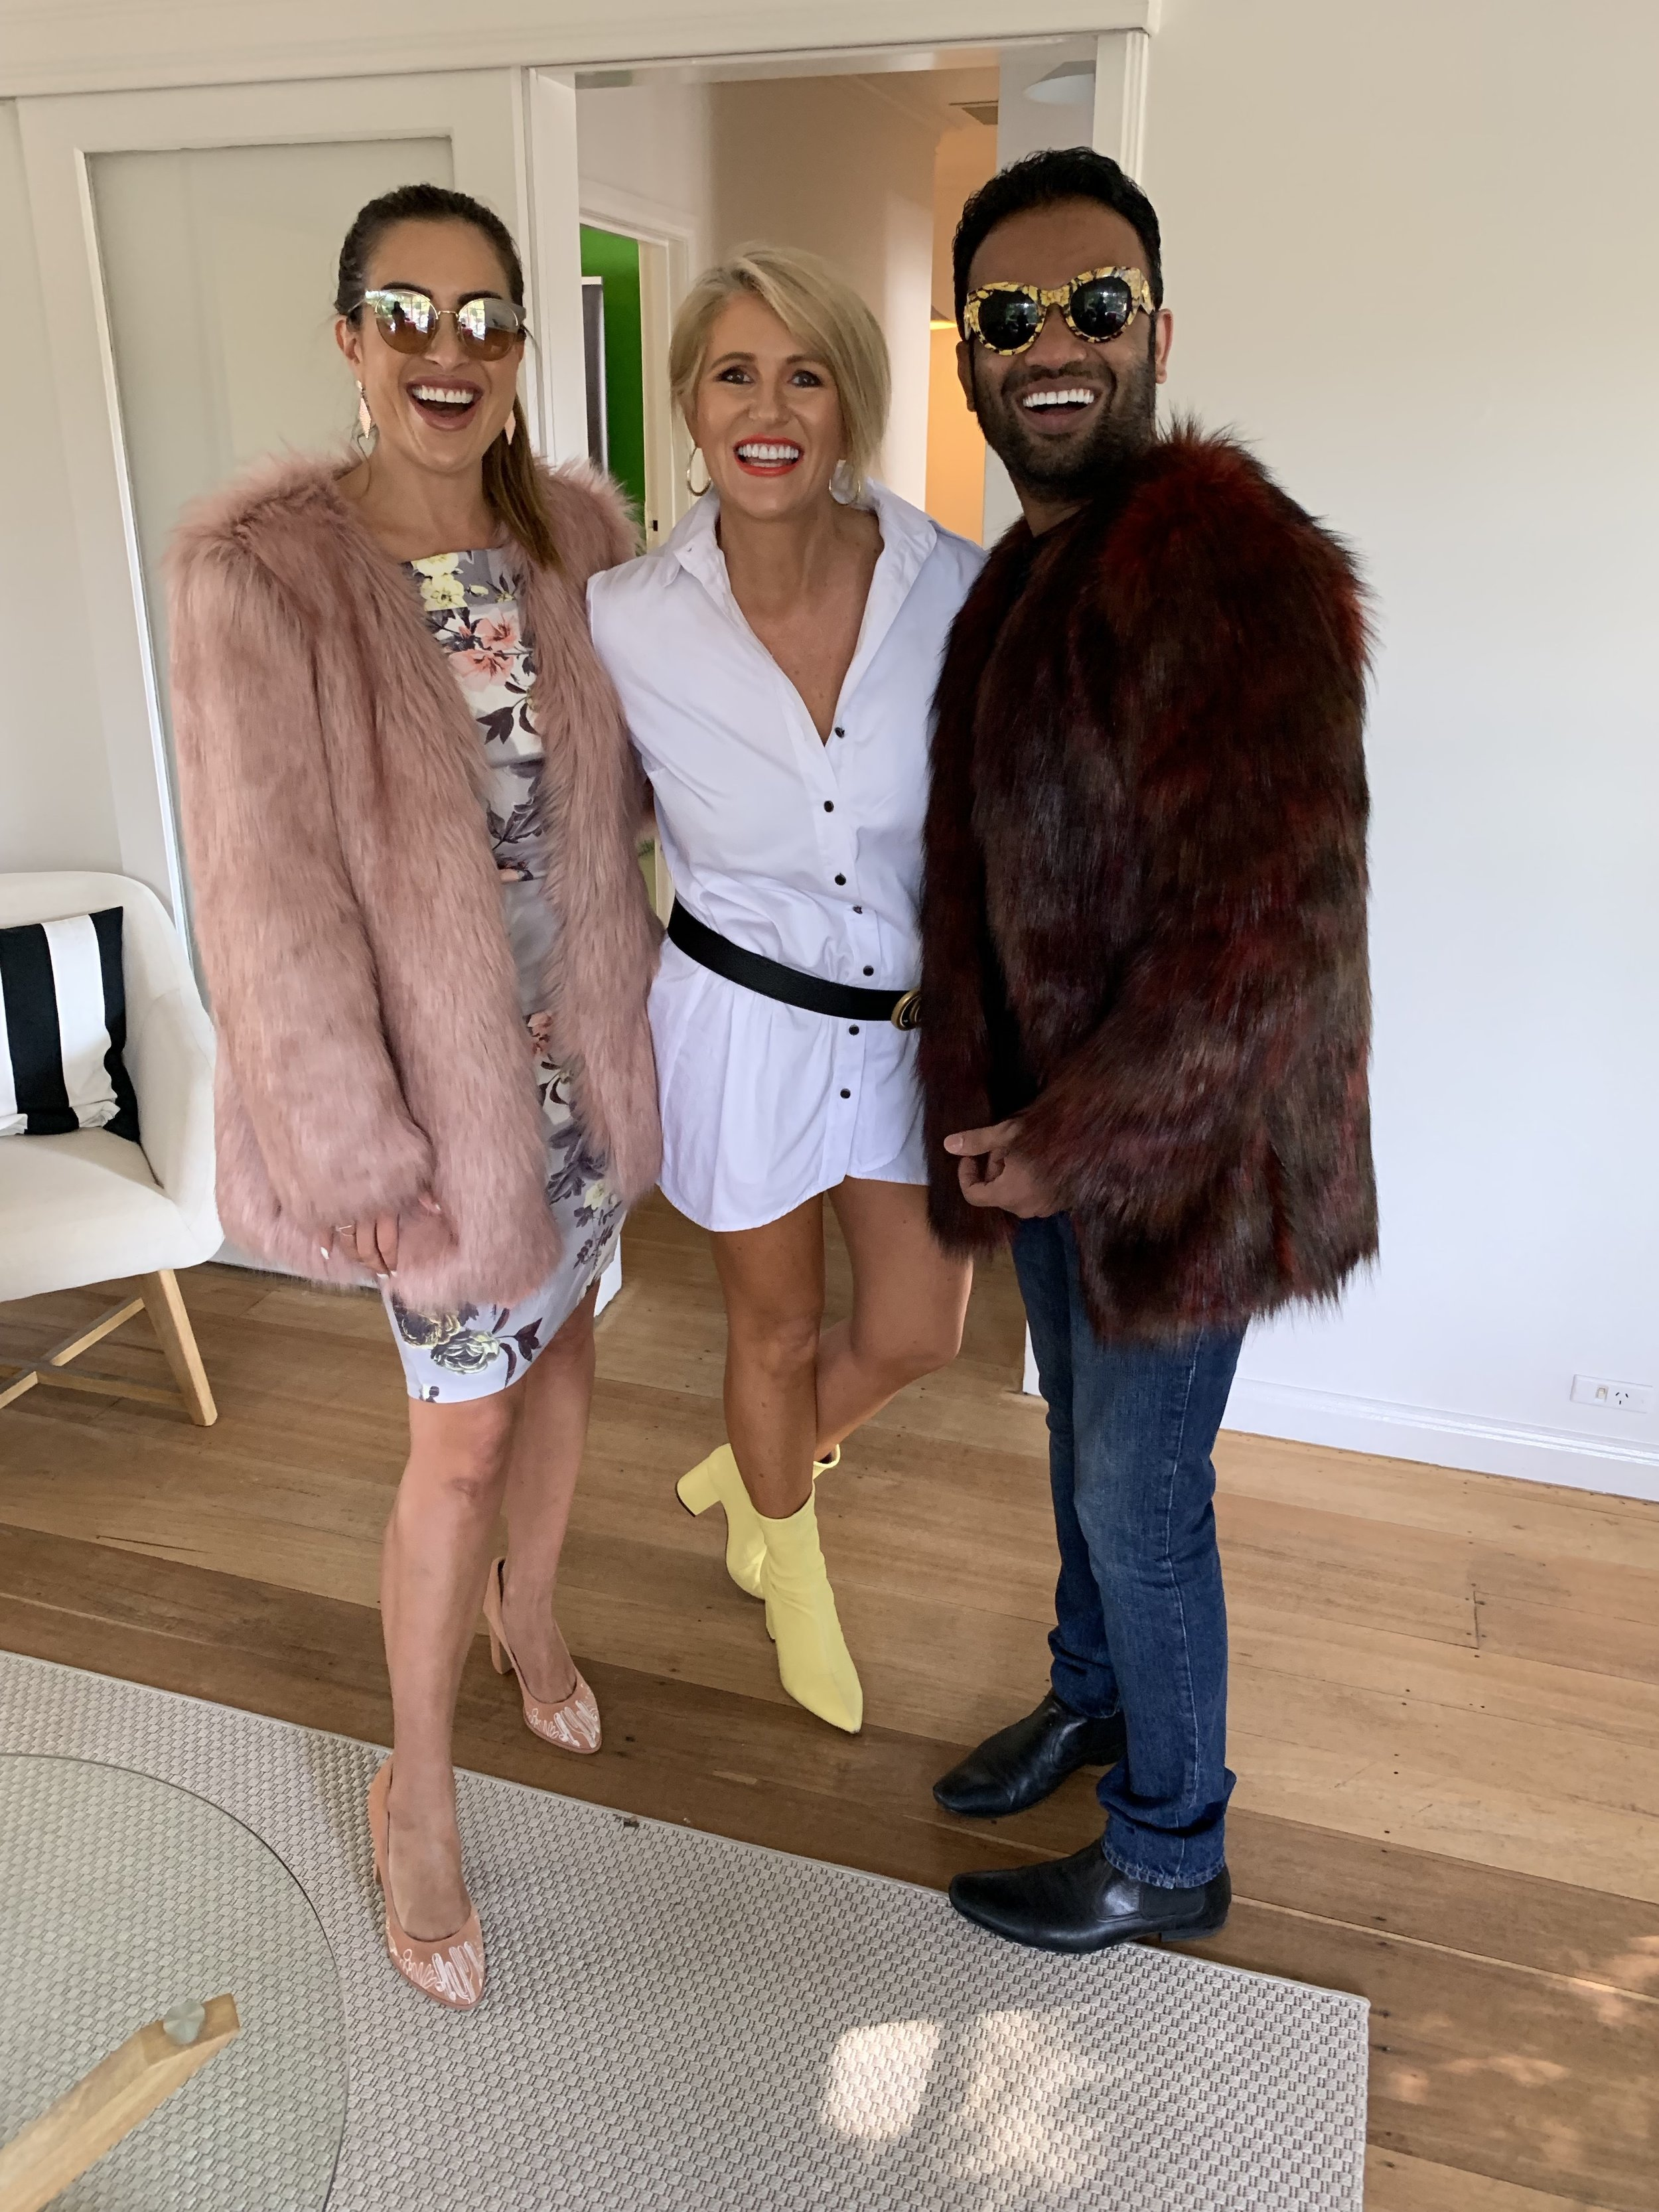 With gorgeous Nadia Stamp and Dr Dee playing around with my sunglasses and faux fur coats at Vogue Dental Studios.